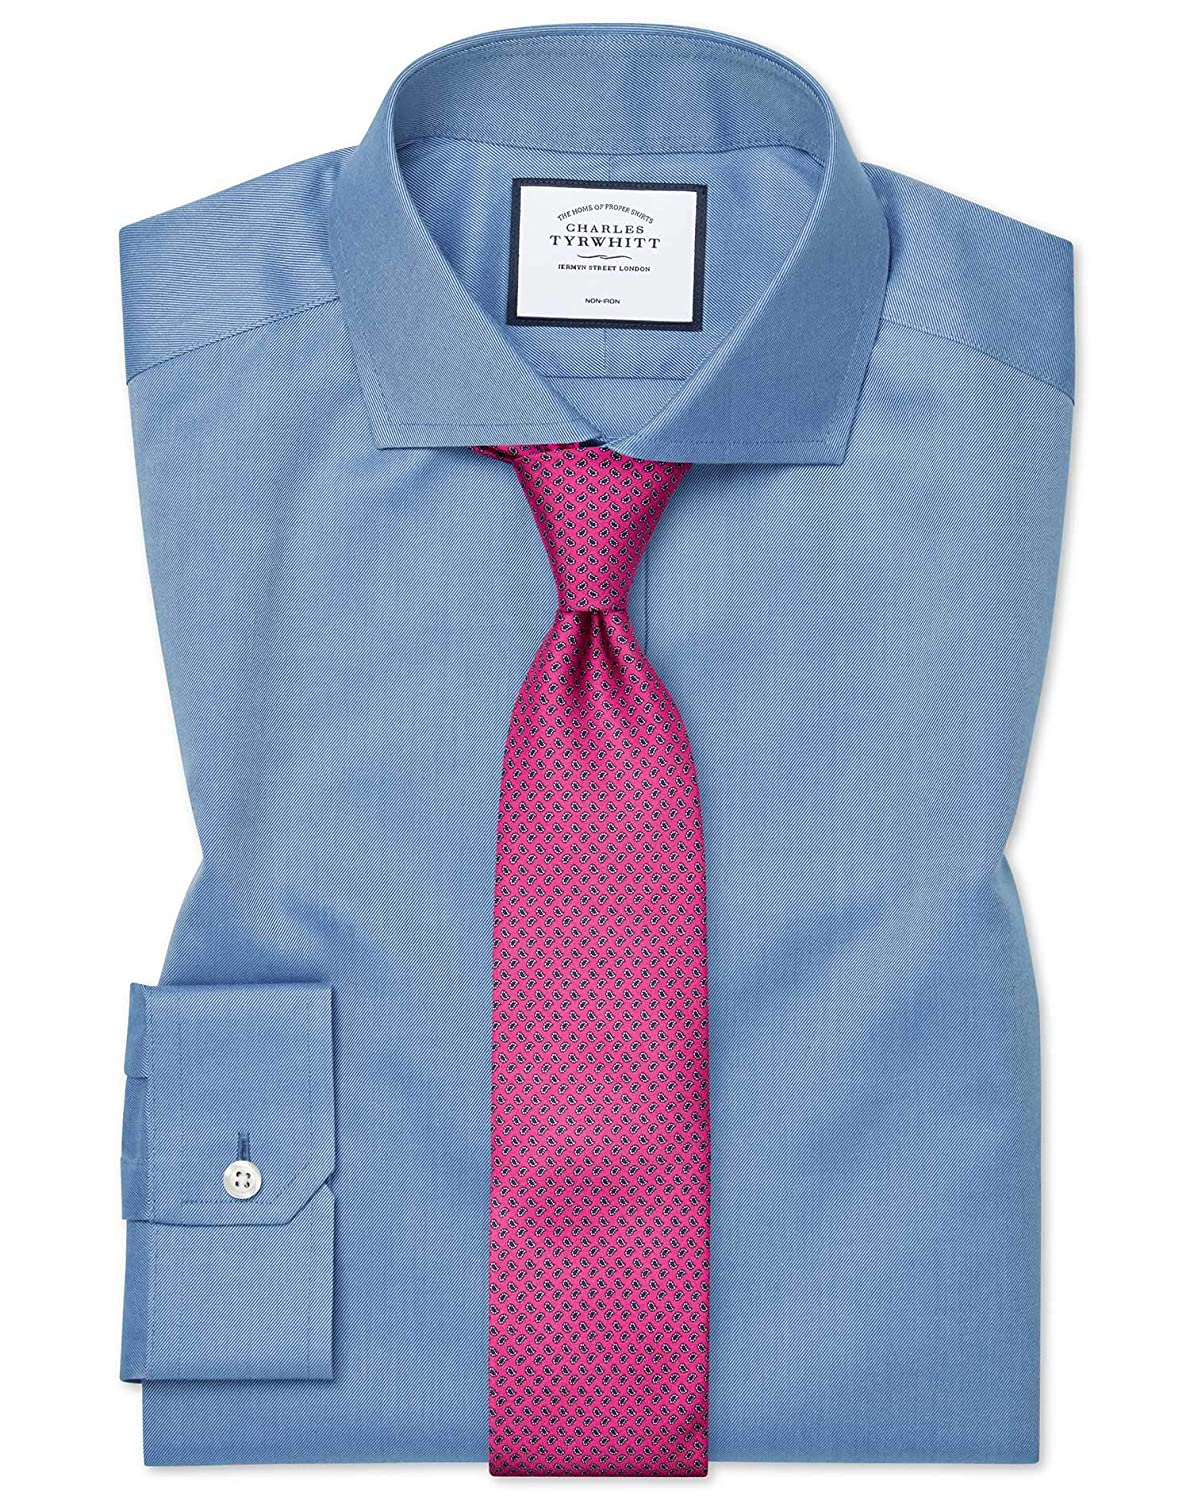 Chemise à Col Cutaway En Twill Bleue Super Slim Fit Sans Repassage   Bleu (Poignet Simple)   16   33